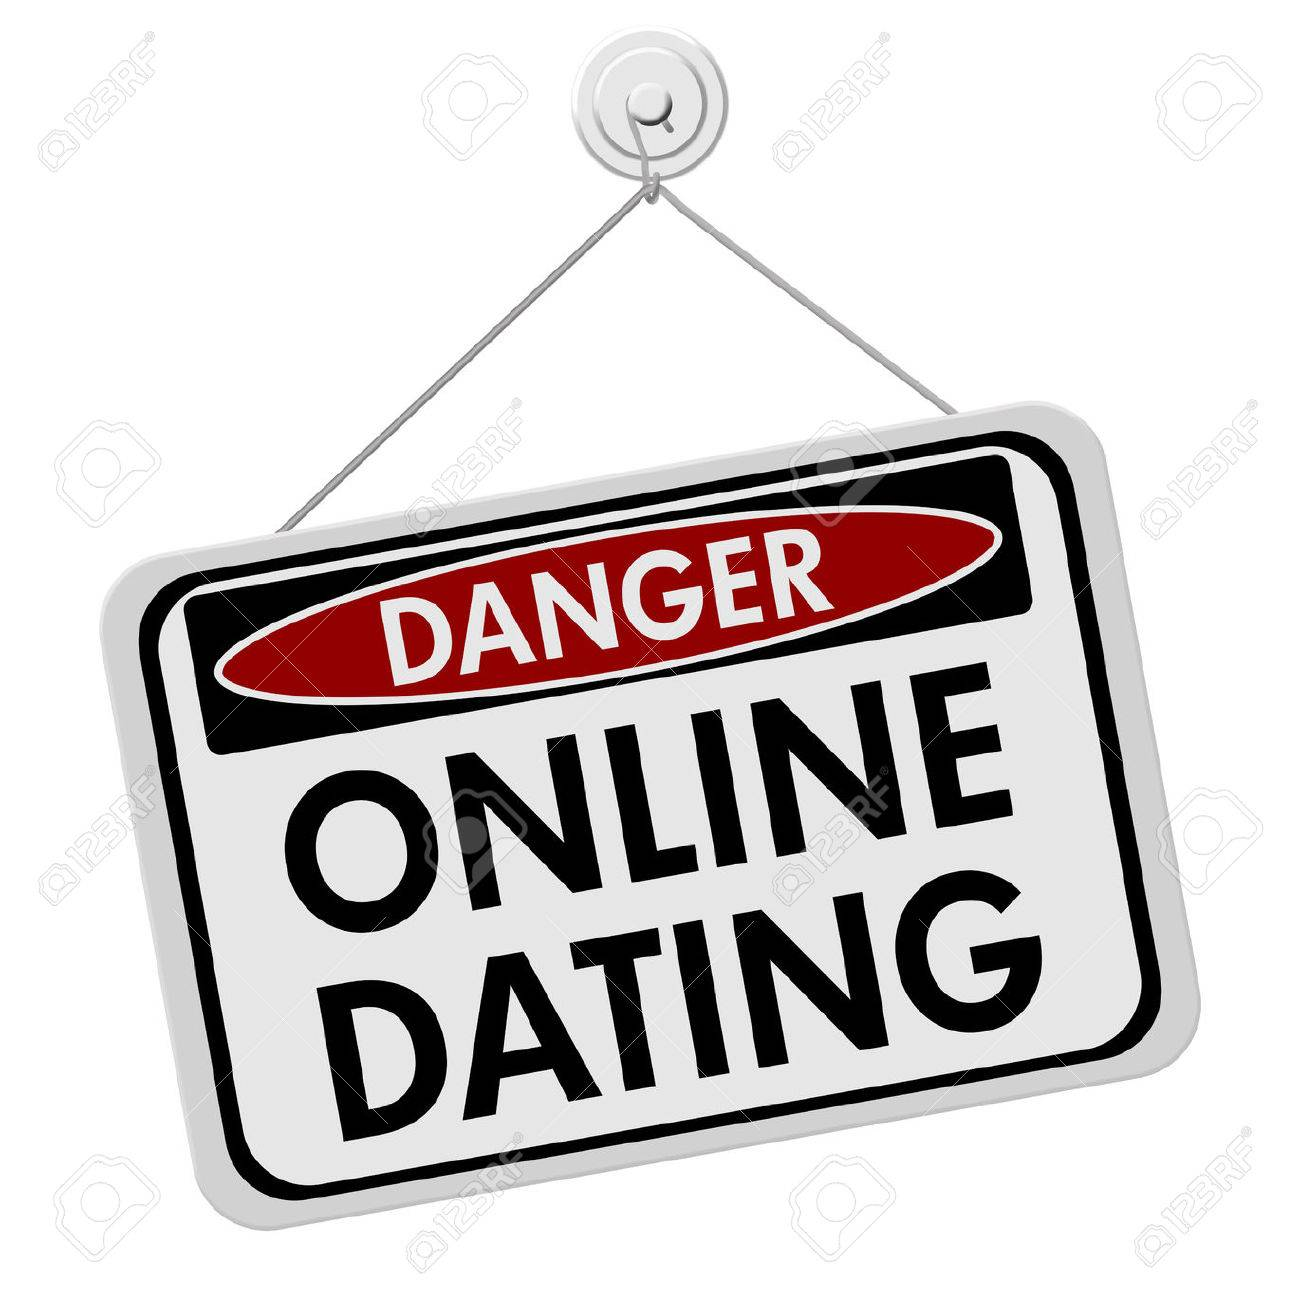 Online dating dangers: local woman shares story of internet scam